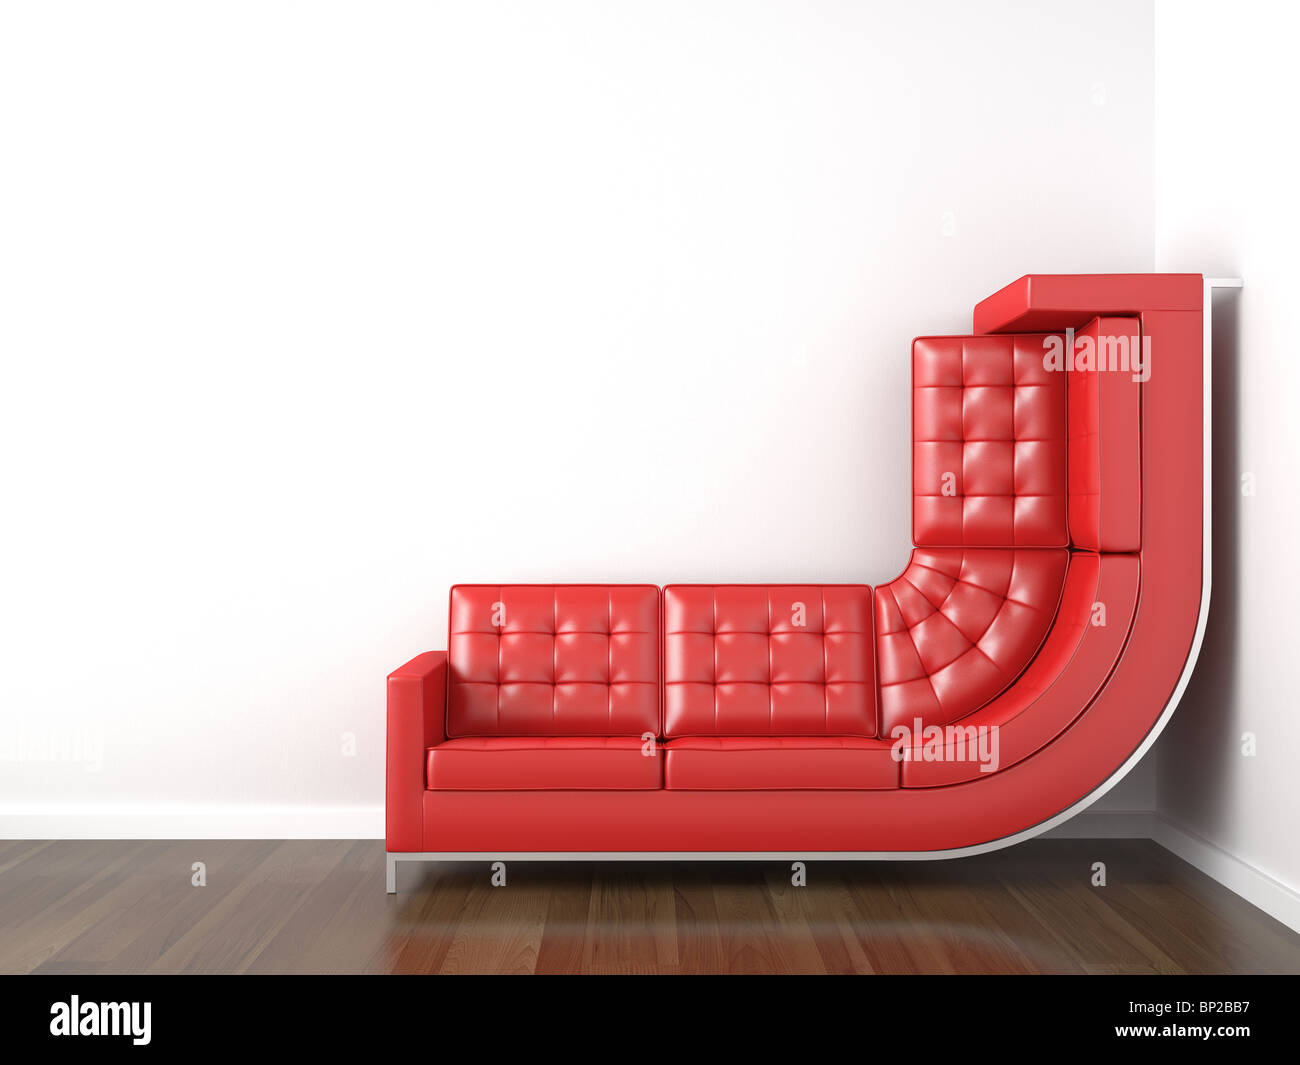 interior design with a bended red couch in a corner white room climbing up the wall with plenty copy space. - Stock Image